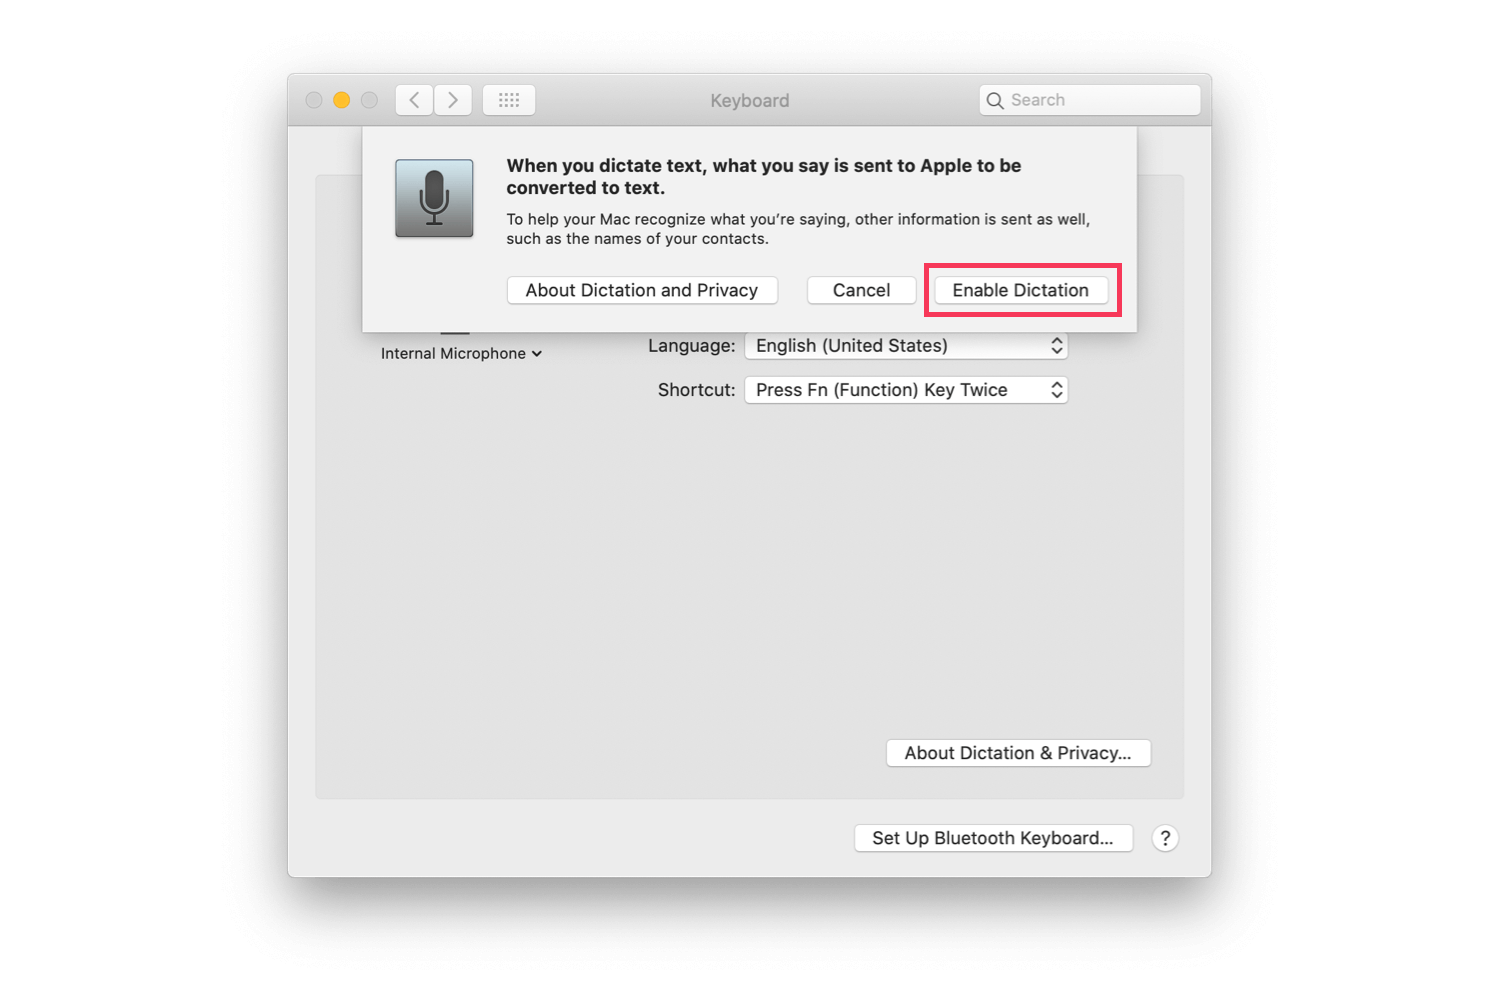 The macOS System Preferences' screen with Enable Dictation highlighted